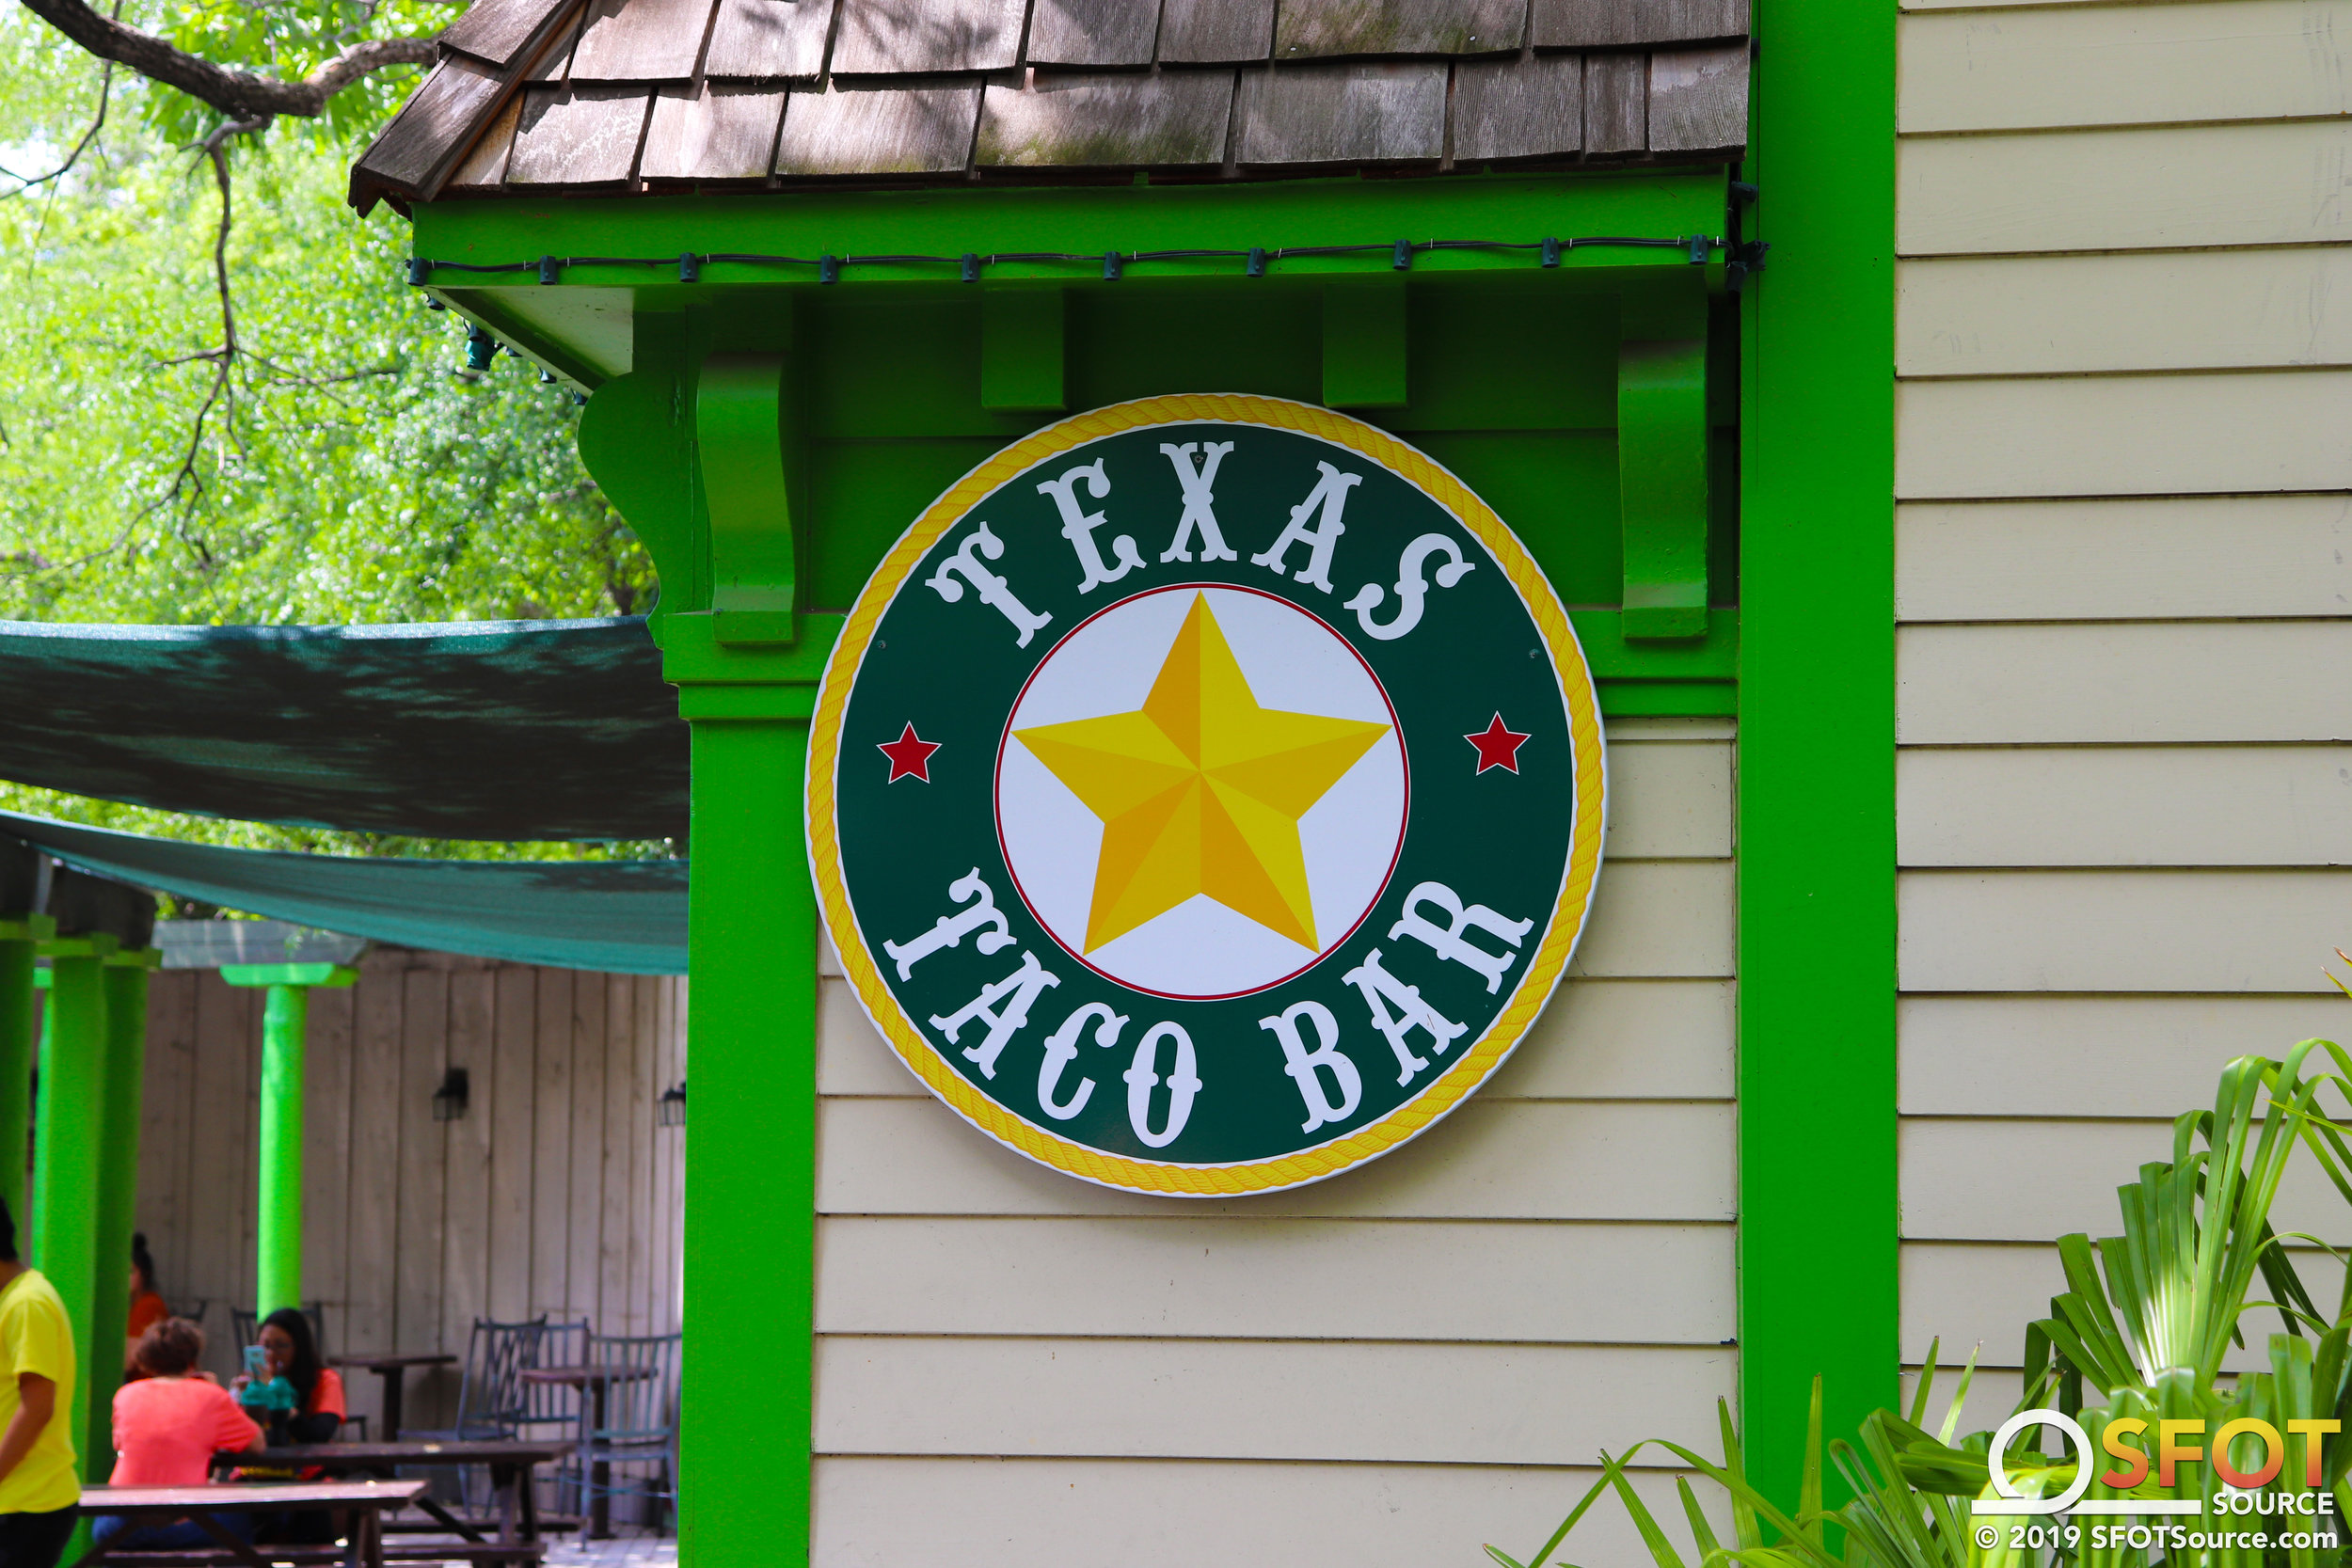 Texas Taco Bar is located in the park's Texas section.